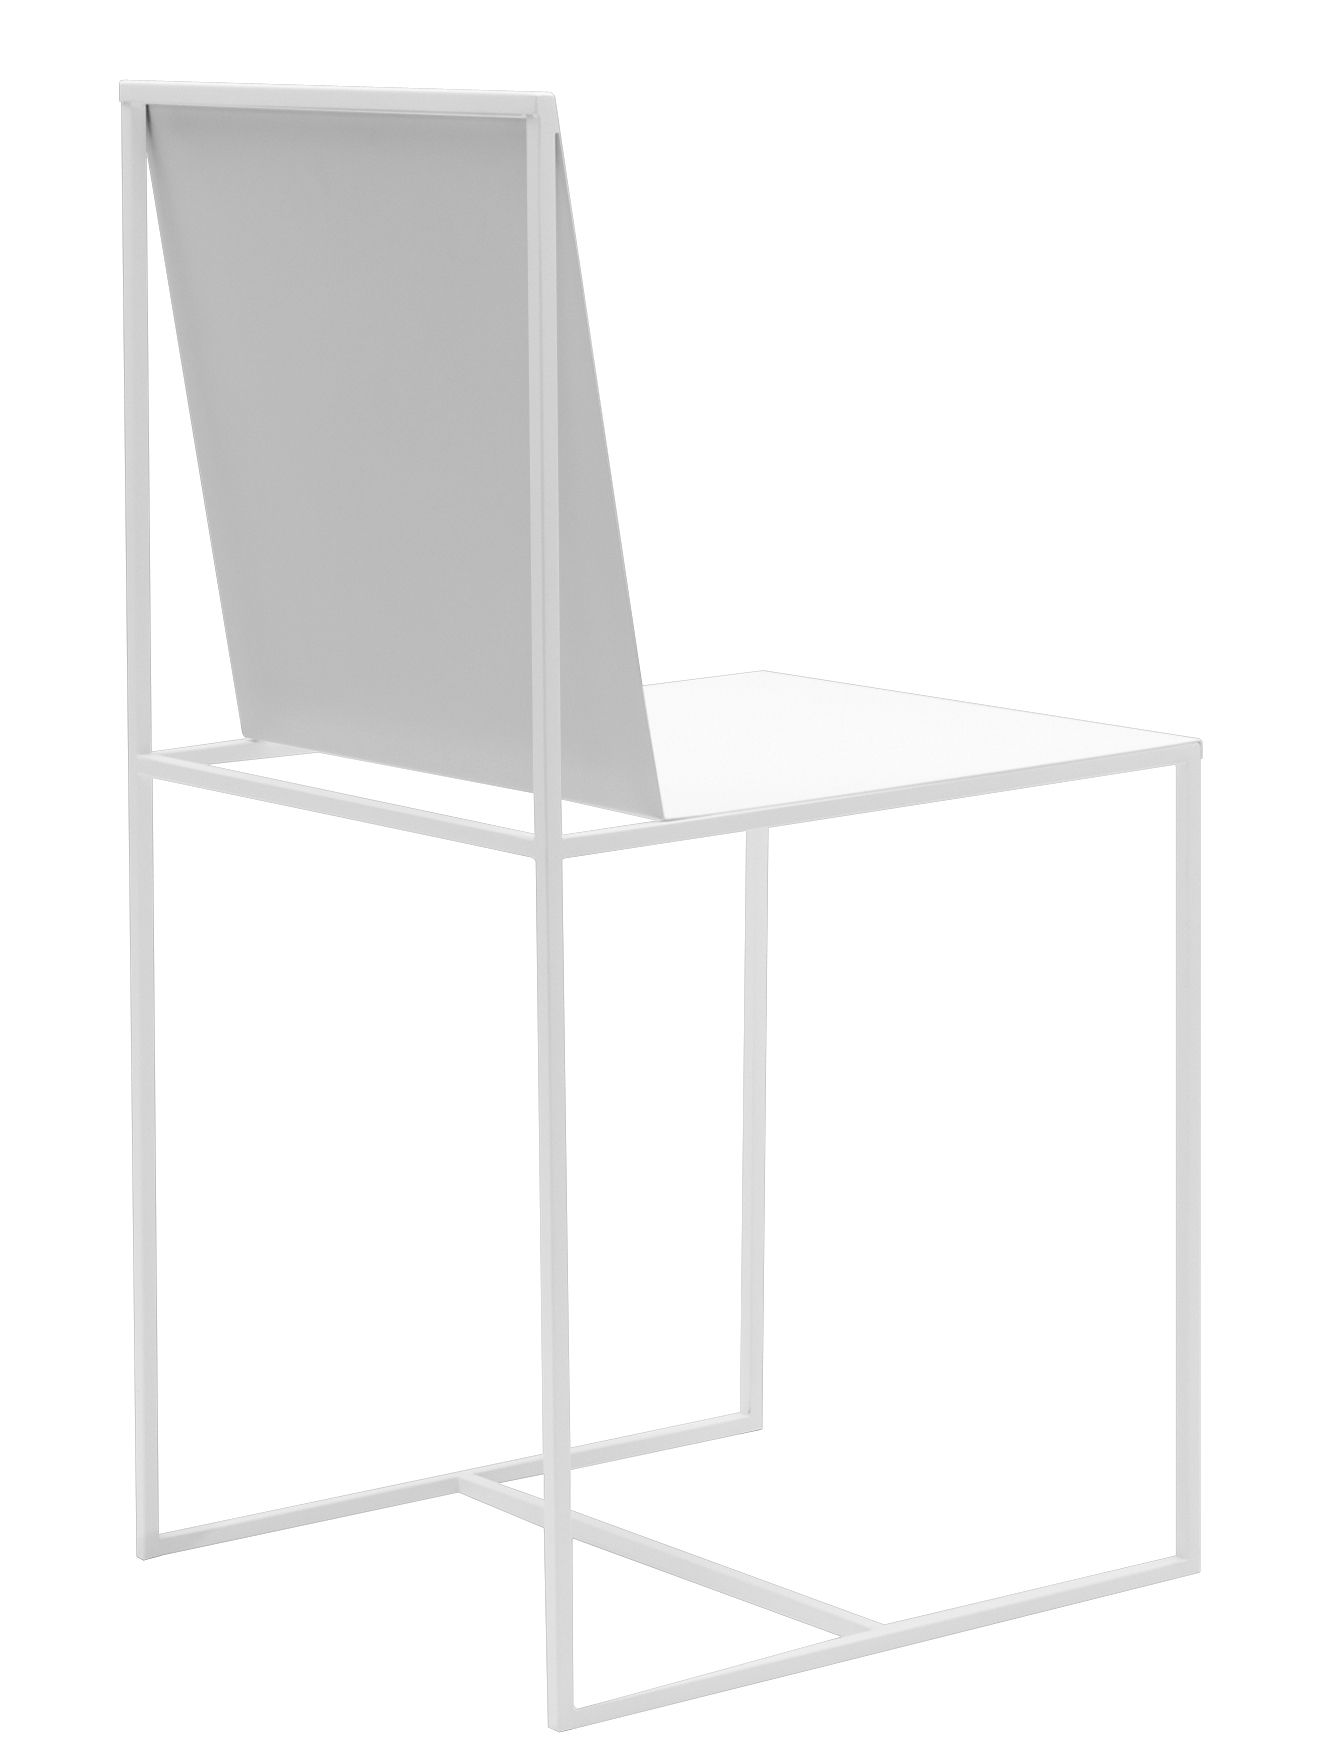 Furniture - Chairs - Slim Sissi Chair - Metal by Zeus - White - Steel